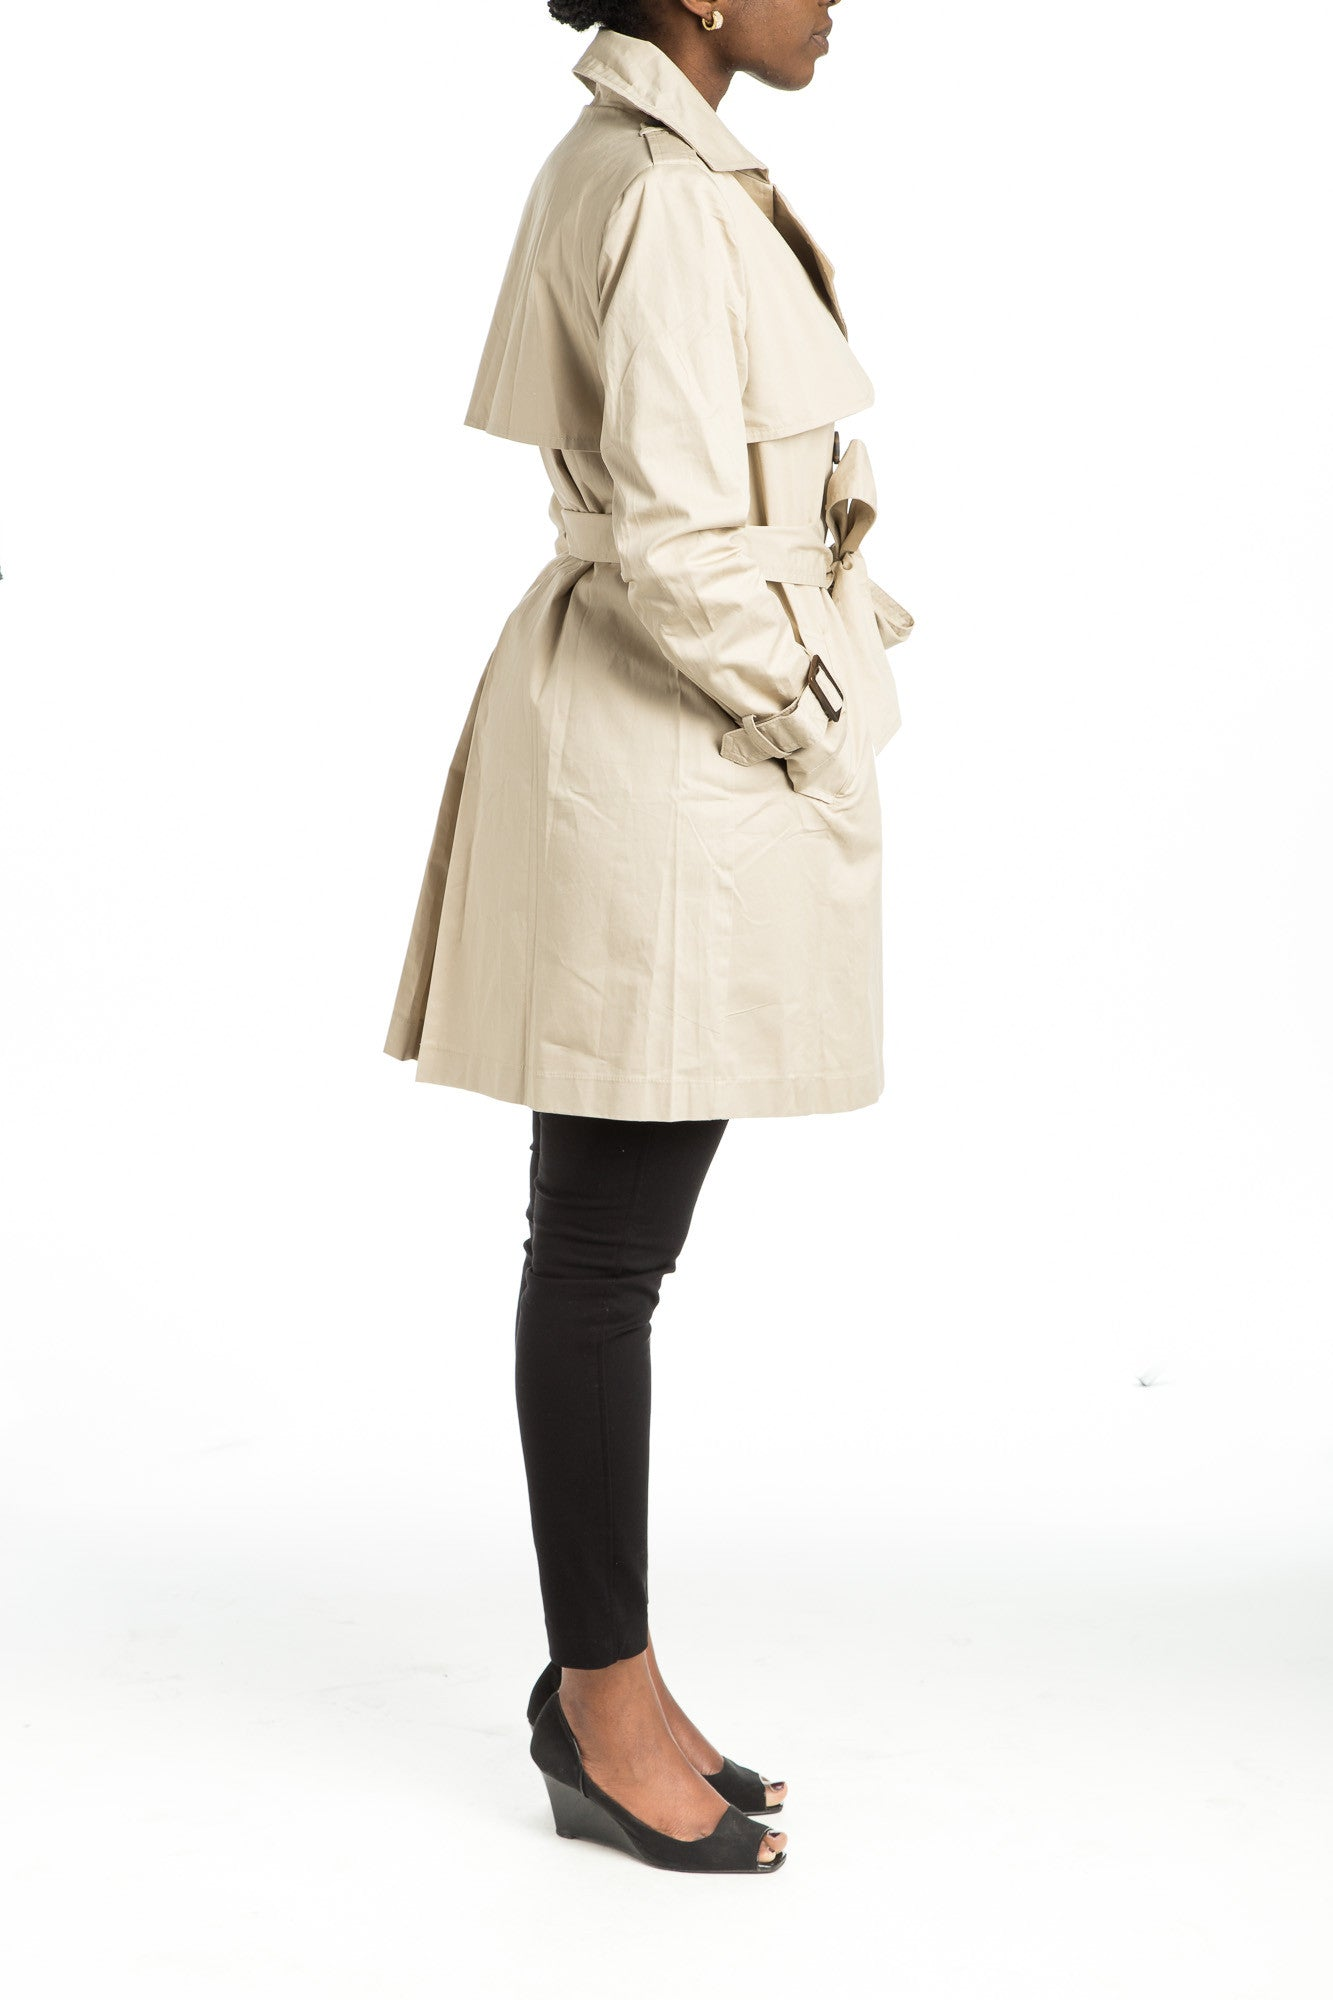 SHERA Trench Coat - 2 colors available - Mademoiselle Veste - 2